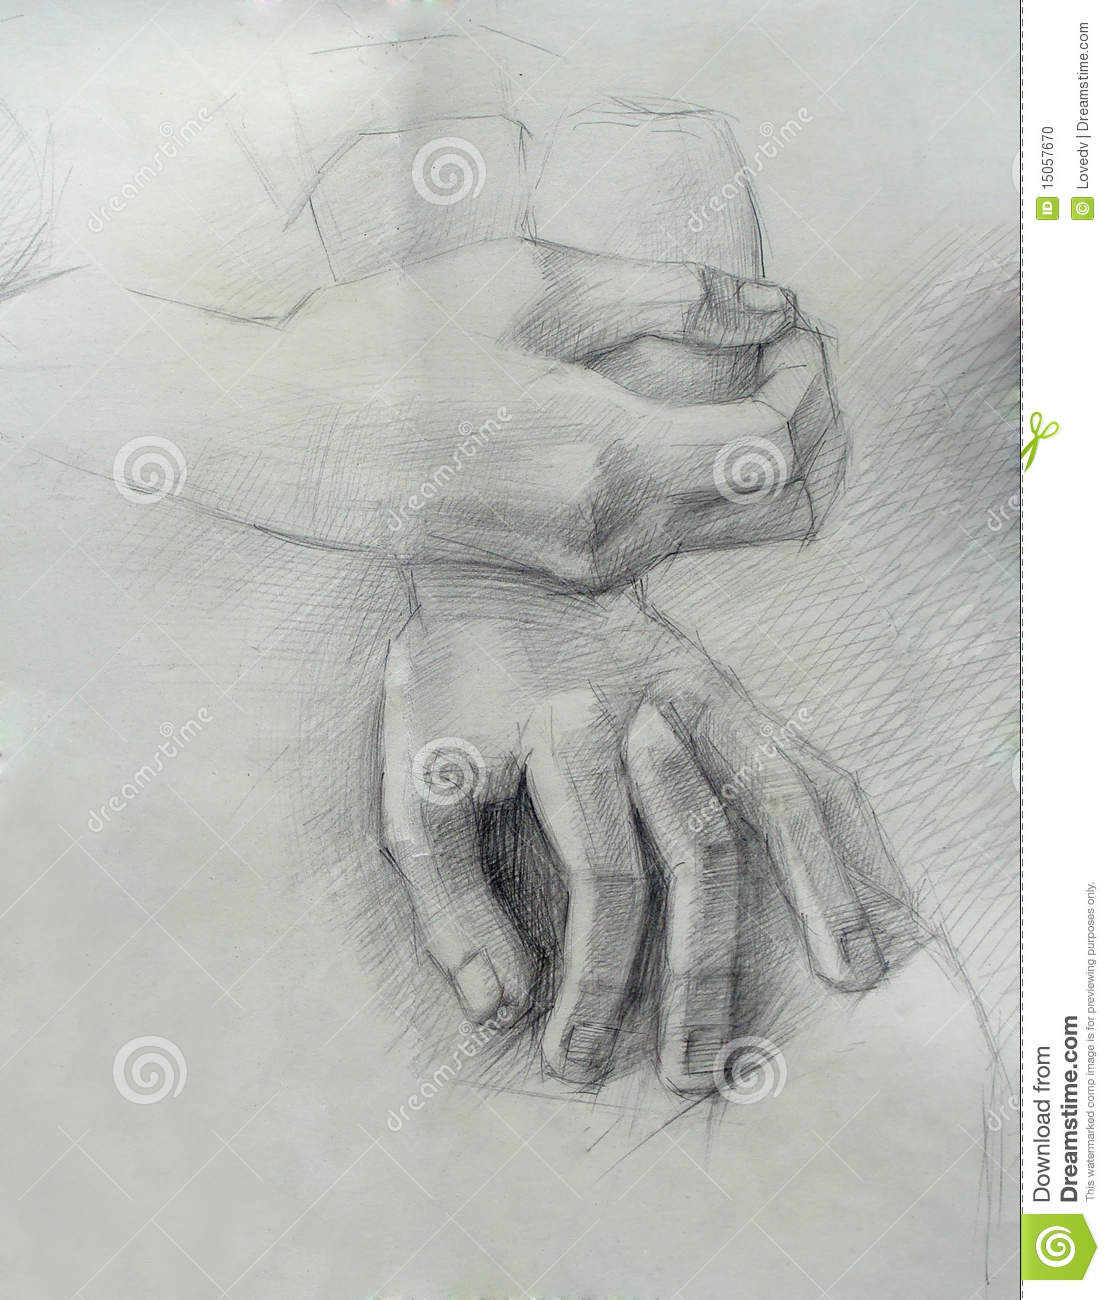 a handmade drawing of hands stock illustration